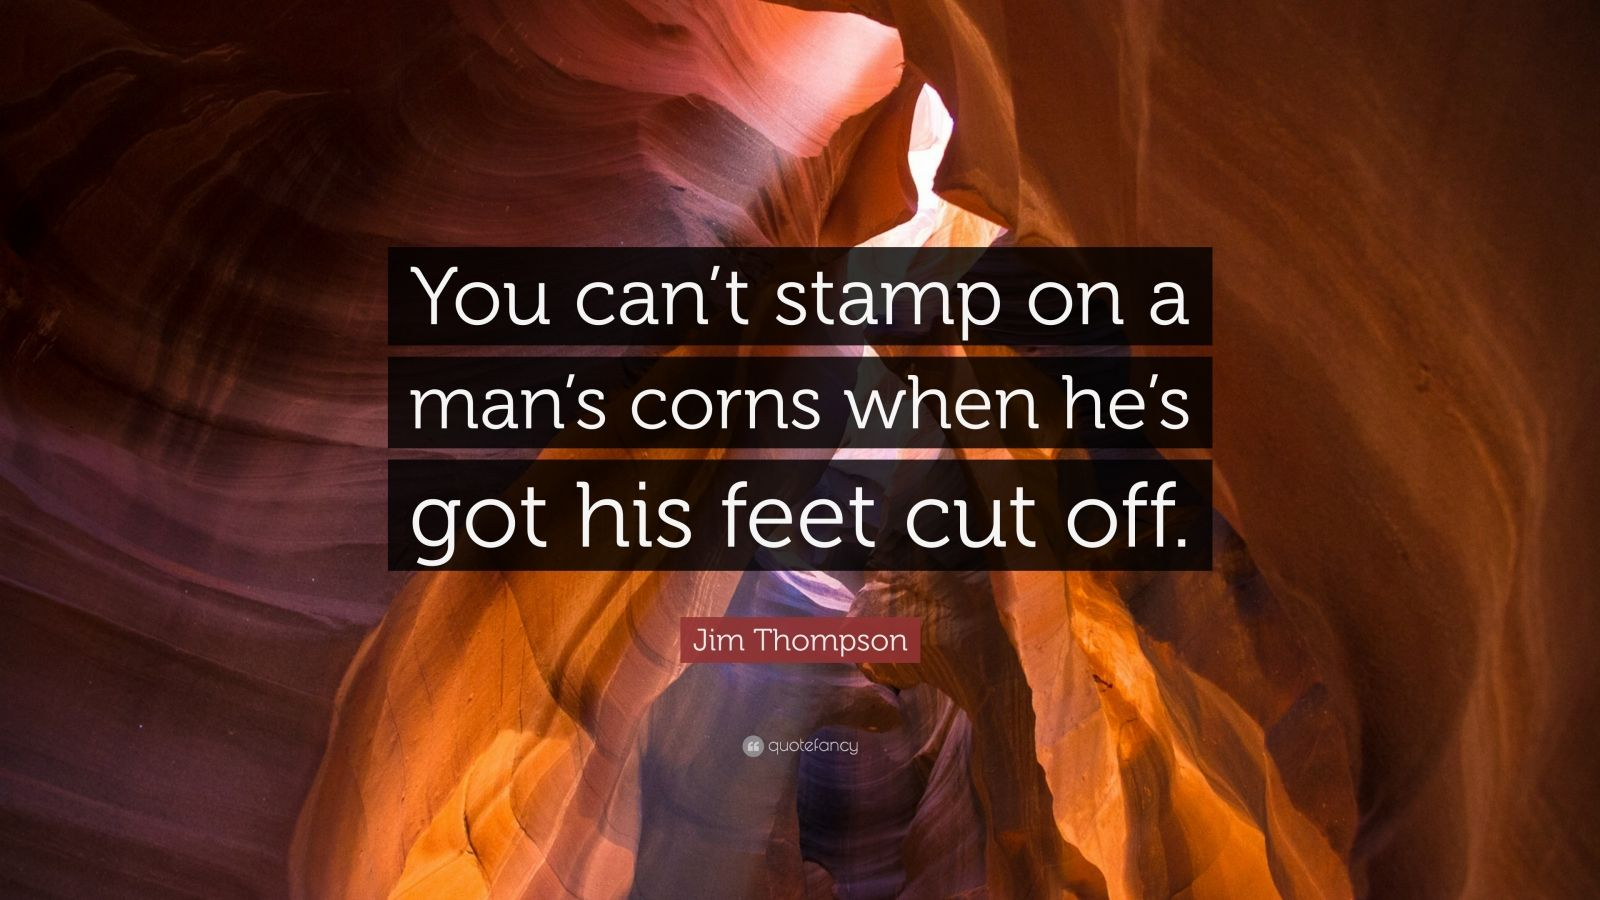 """Jim Thompson Quote: """"You can't stamp on a man's corns when he's got his feet cut off."""""""